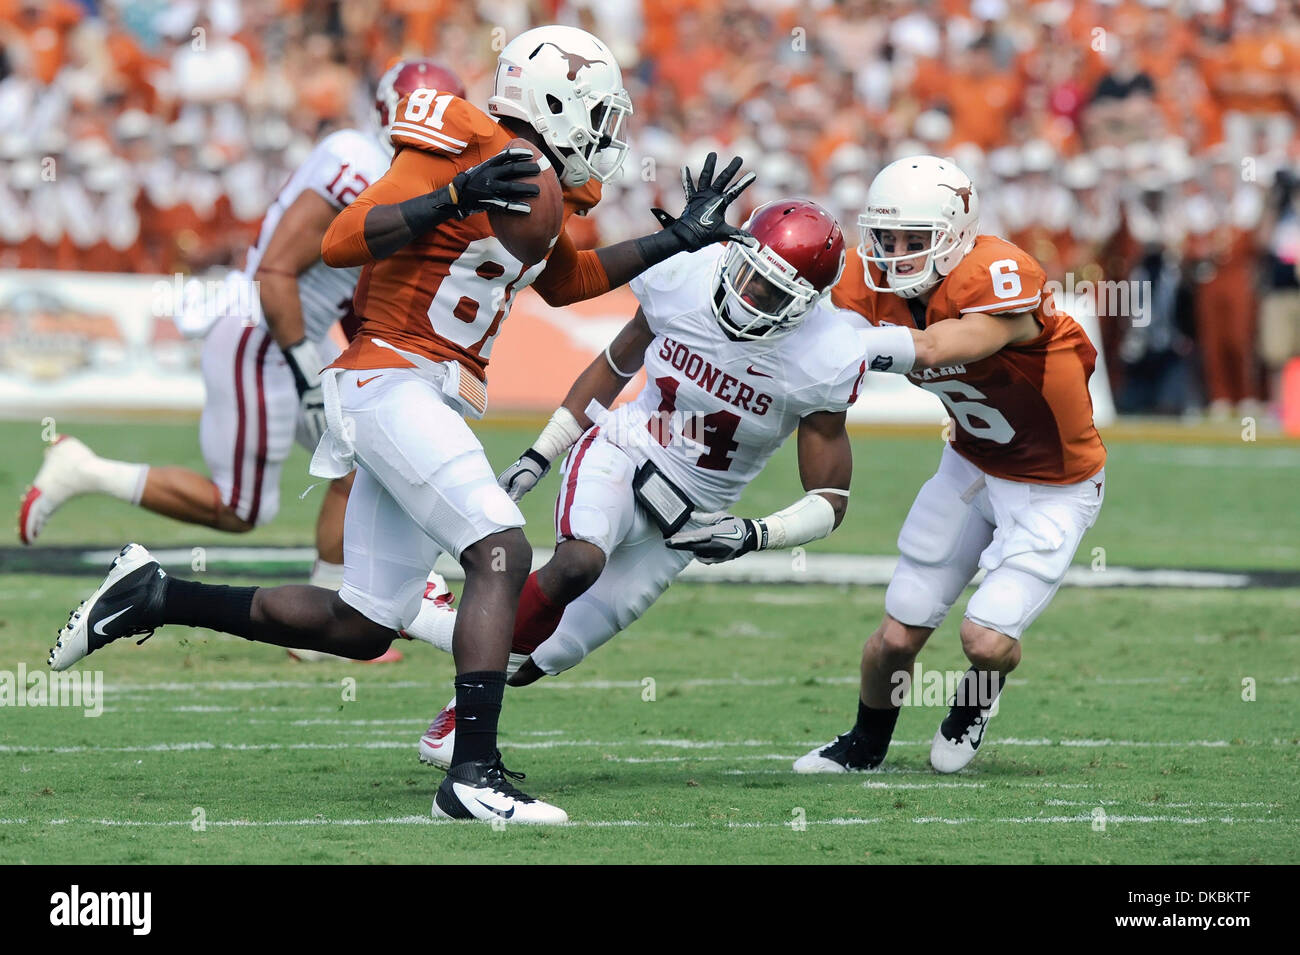 Oct. 8, 2011 - Dallas, Texas, U.S - Texas Longhorns wide receiver Miles Onyegbule (81) looks to stiff arm Oklahoma Sooners defensive back Aaron Colvin (14) during first half action of the Red River Rivalry between the #3 Oklahoma Sooners and #11 Texas Longhorns at Cotton Bowl in Dallas, Texas.  The Sooners lead 34-10 over the Longhorns at the half. (Credit Image: © Steven Leija/Sou - Stock Image